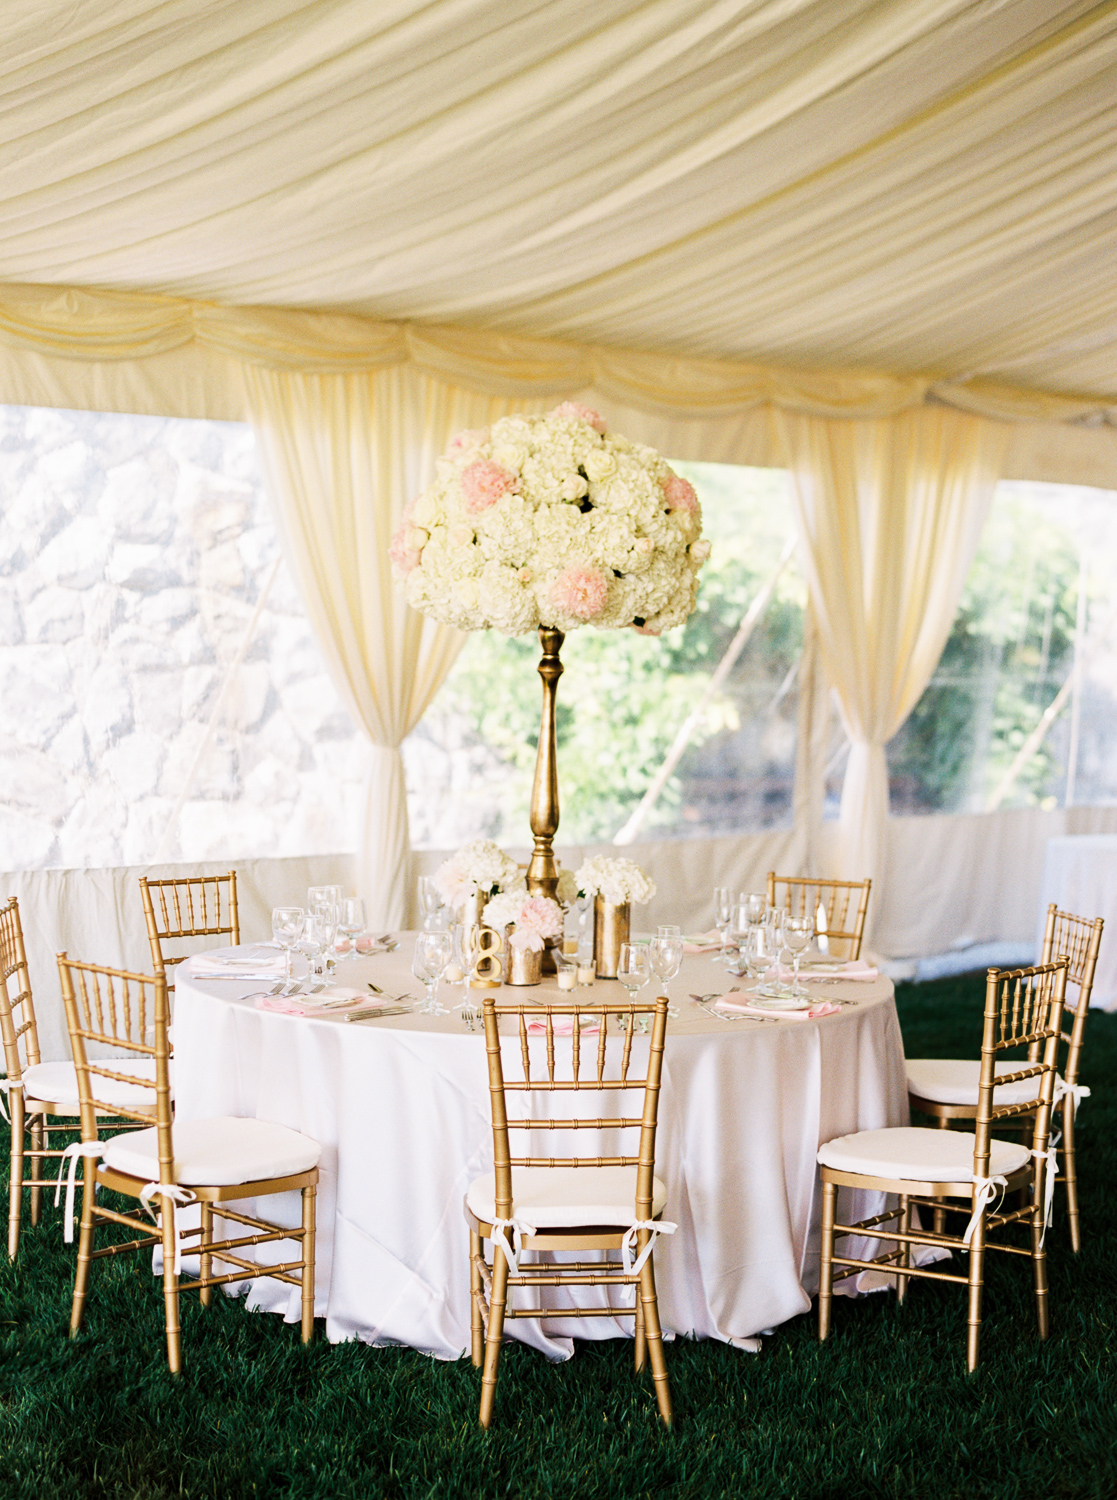 Tent Reception with Ivory Draping - Elizabeth Anne Designs The Wedding Blog & Tent Reception with Ivory Draping - Elizabeth Anne Designs: The ...